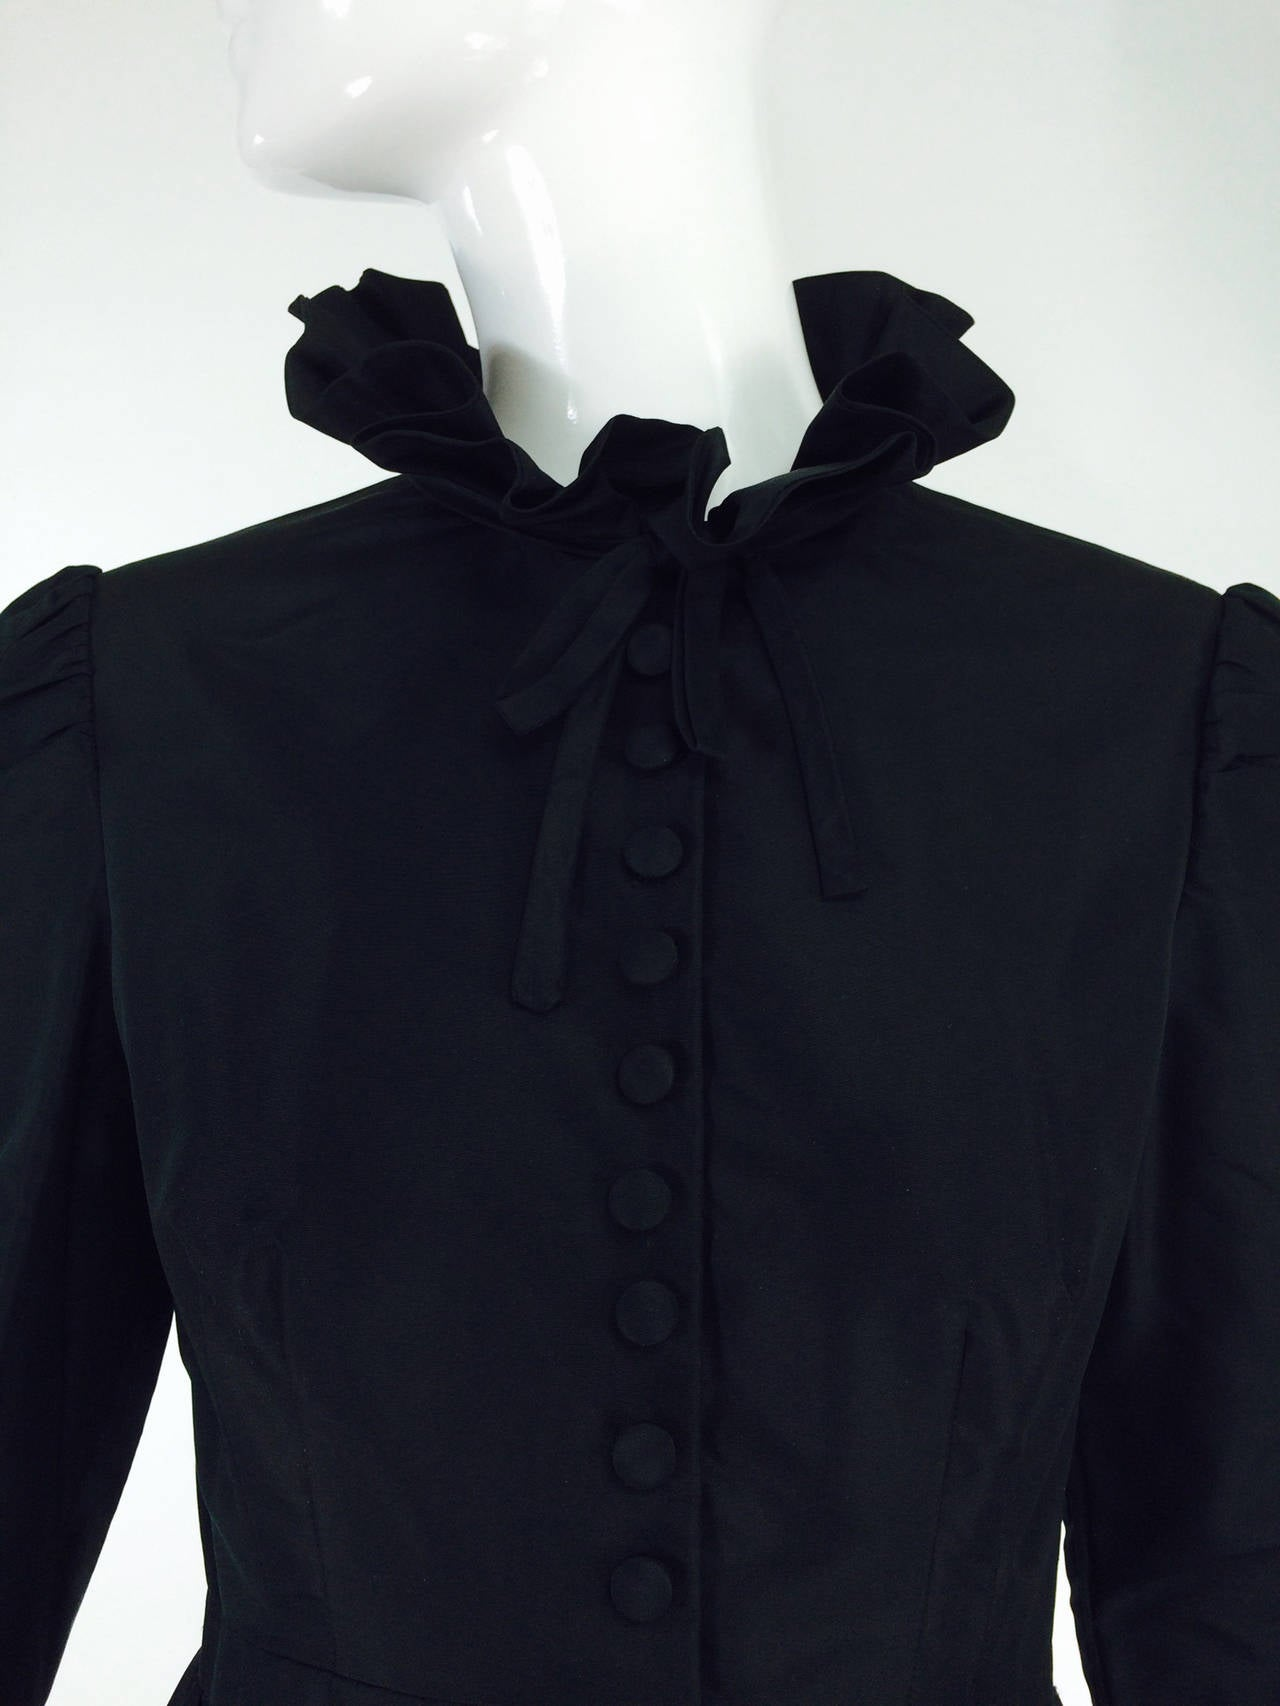 Shannon Rodgers for Jerry Silverman black Victorian style gown 1960s...High neck black taffeta gown from the early 1960s...Long sleeve fitted bodice gown has button detail front with narrow bow tie at the stand up ruffle collar...The sleeves are